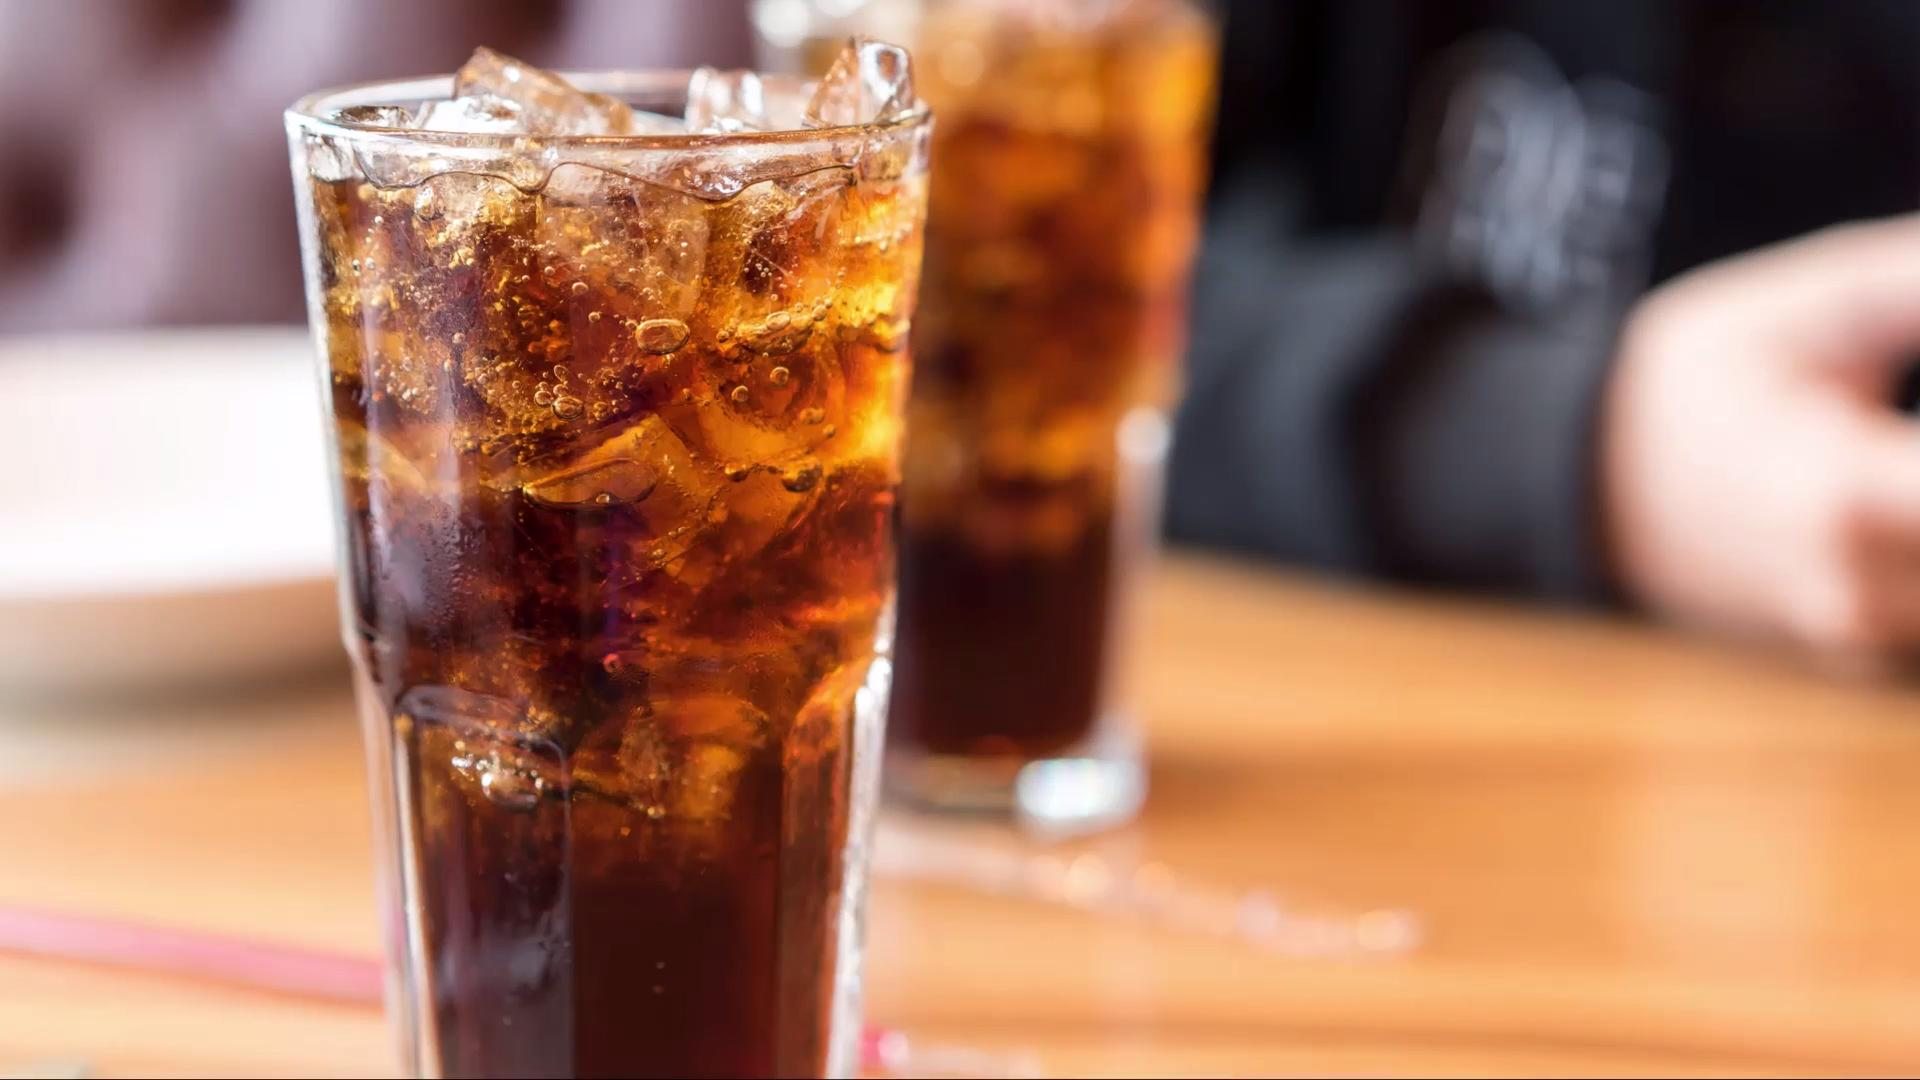 5 Ways Drinking Diet Soda Can Change Your Body - Cooking Light